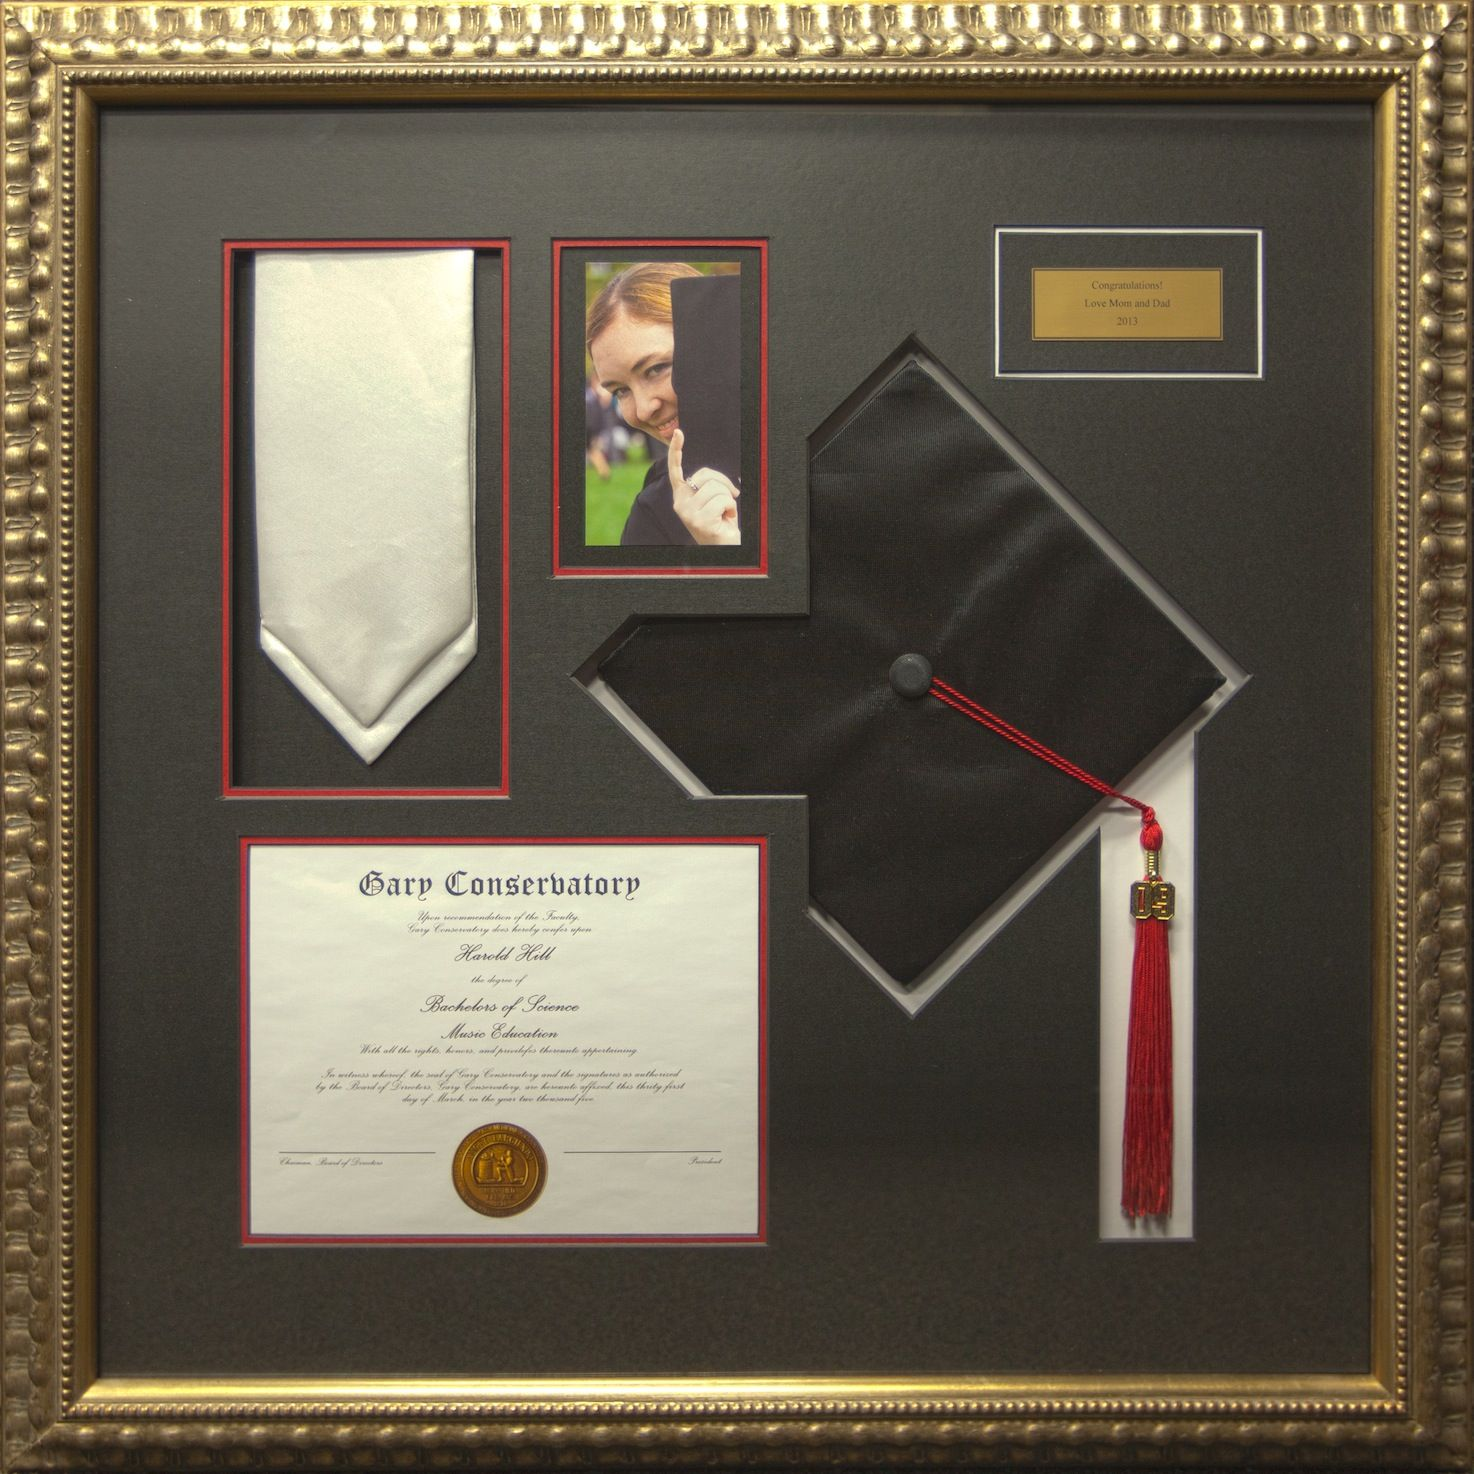 highlight your grads achievement with a customized frame featuring special items like their diploma class